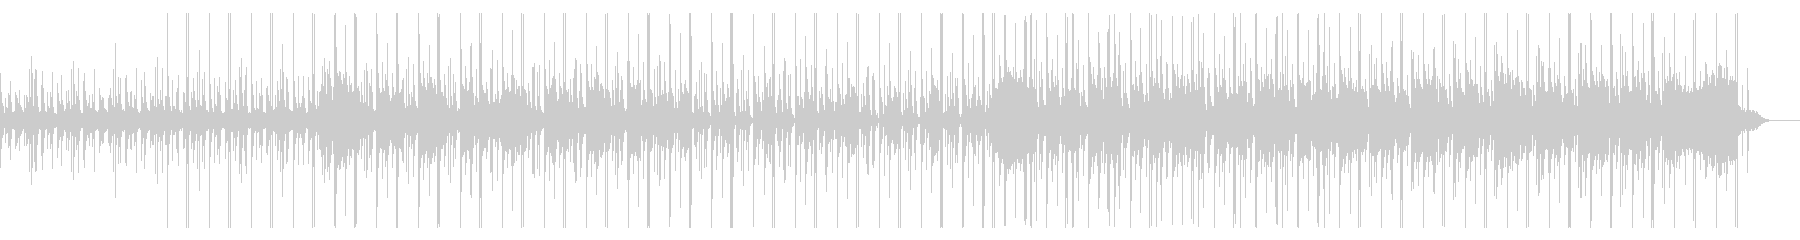 Chill-out BGM with the image of the beach's unreproduced waveform